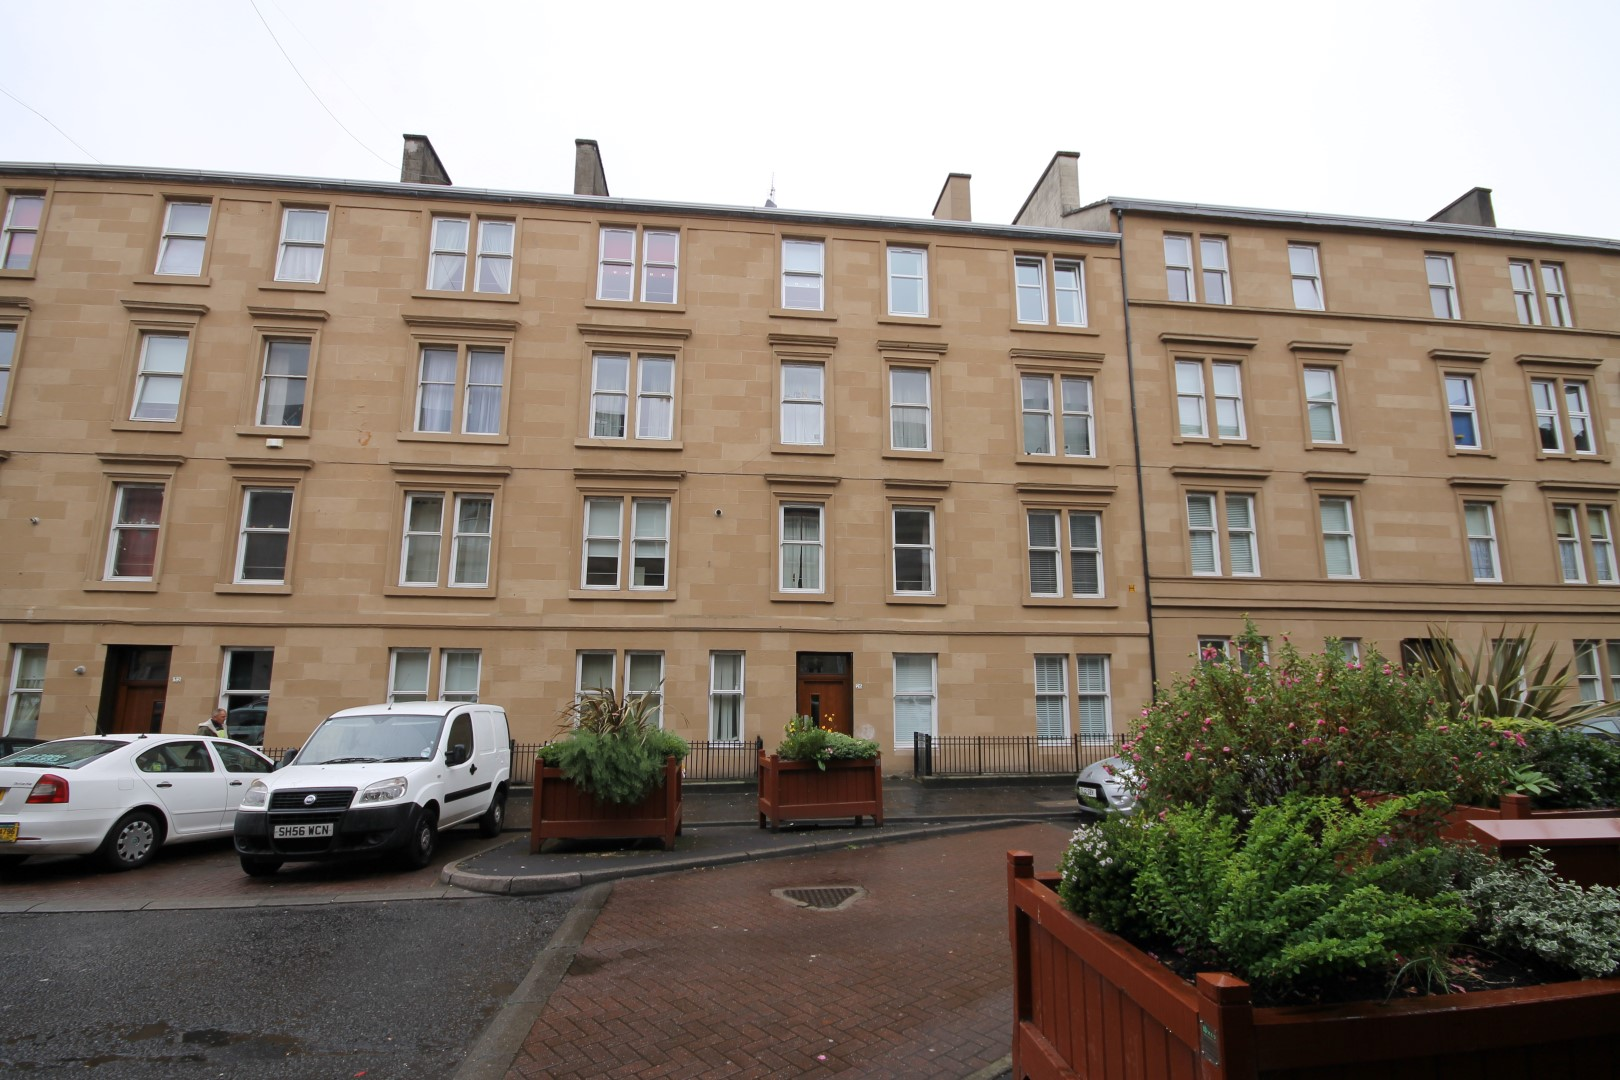 DENNISTOUN – 2 Bedroom Flat